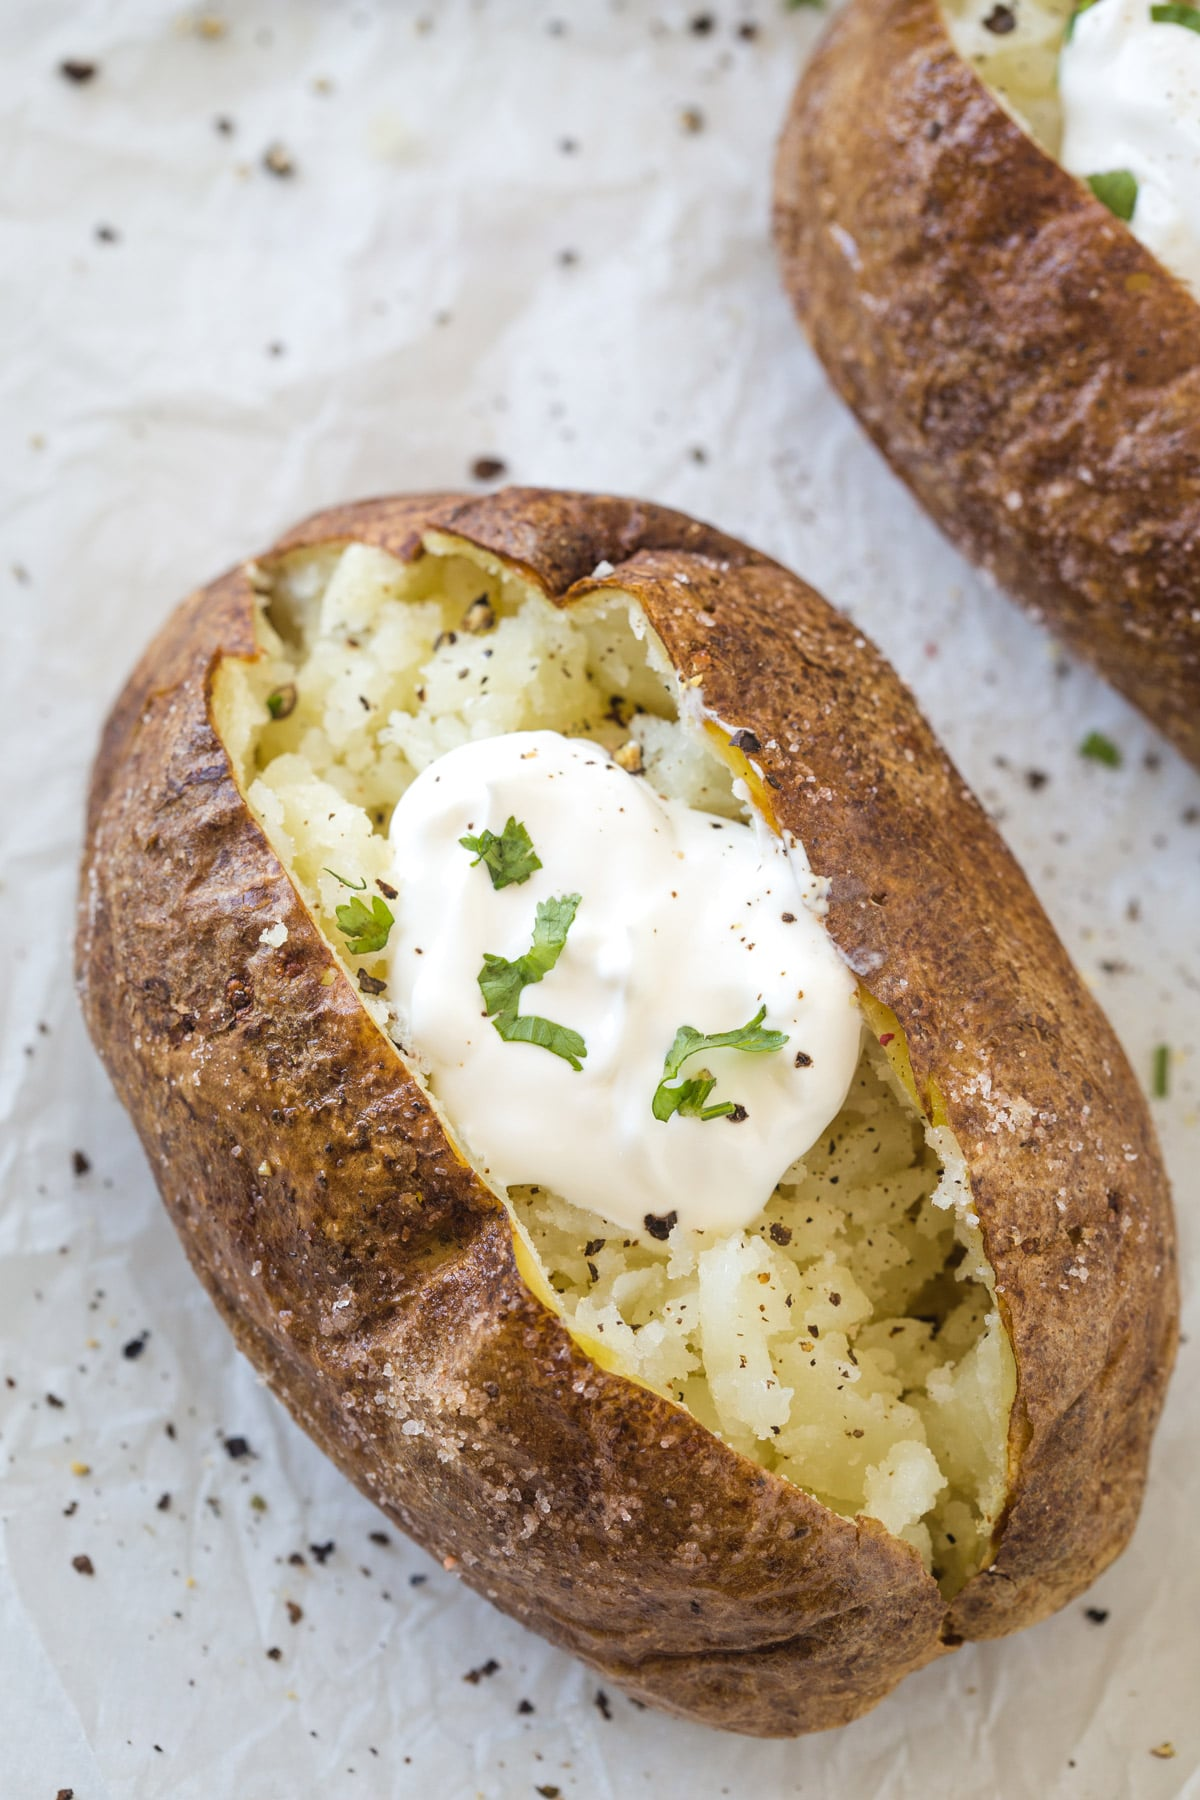 Looking down on a cooked baked potato topped with sour cream, salt, pepper, and parsley